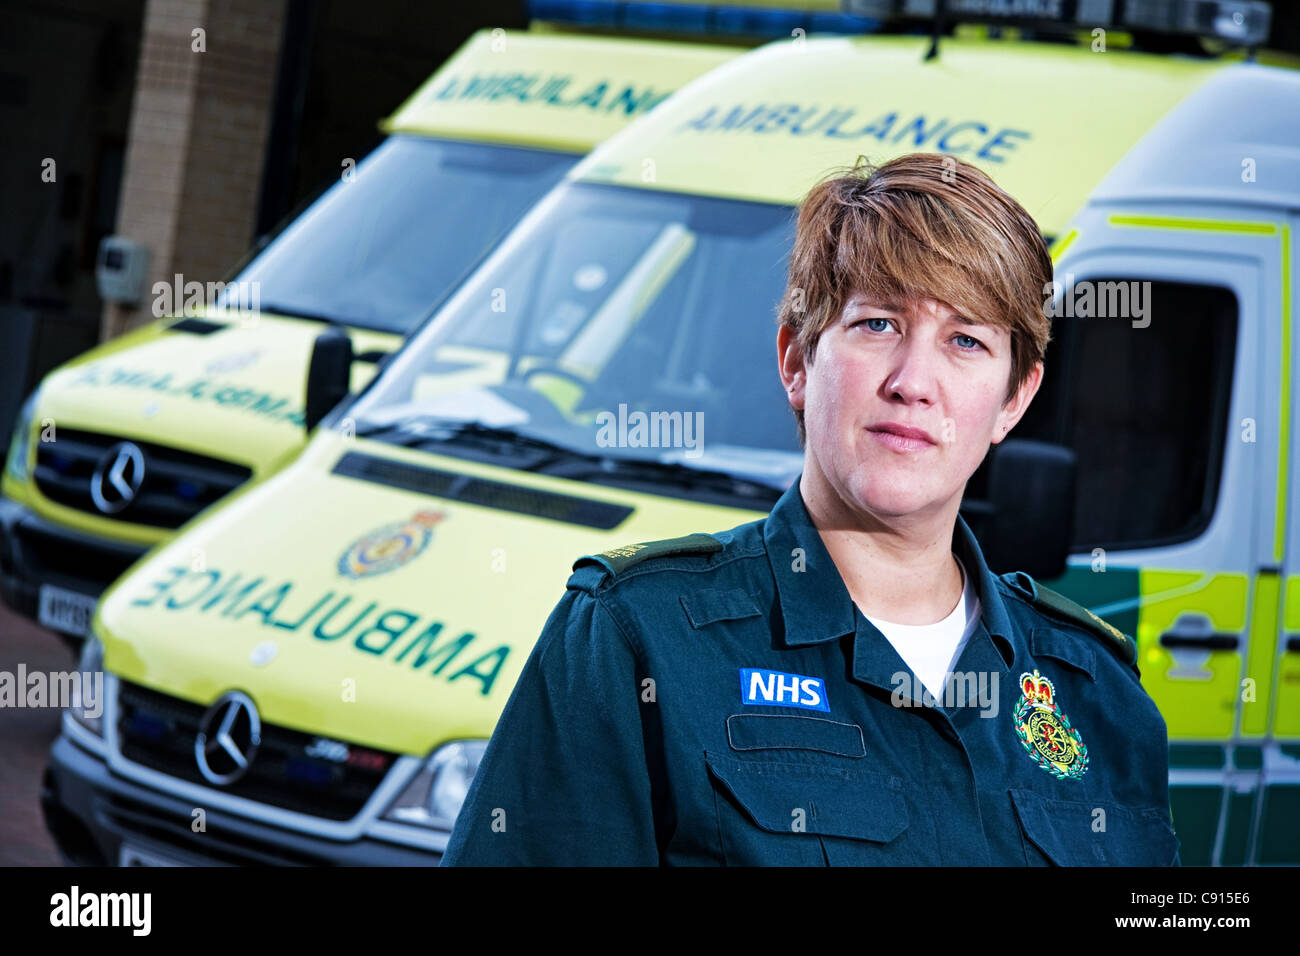 Ambulance worker Erica Cowley - Stock Image